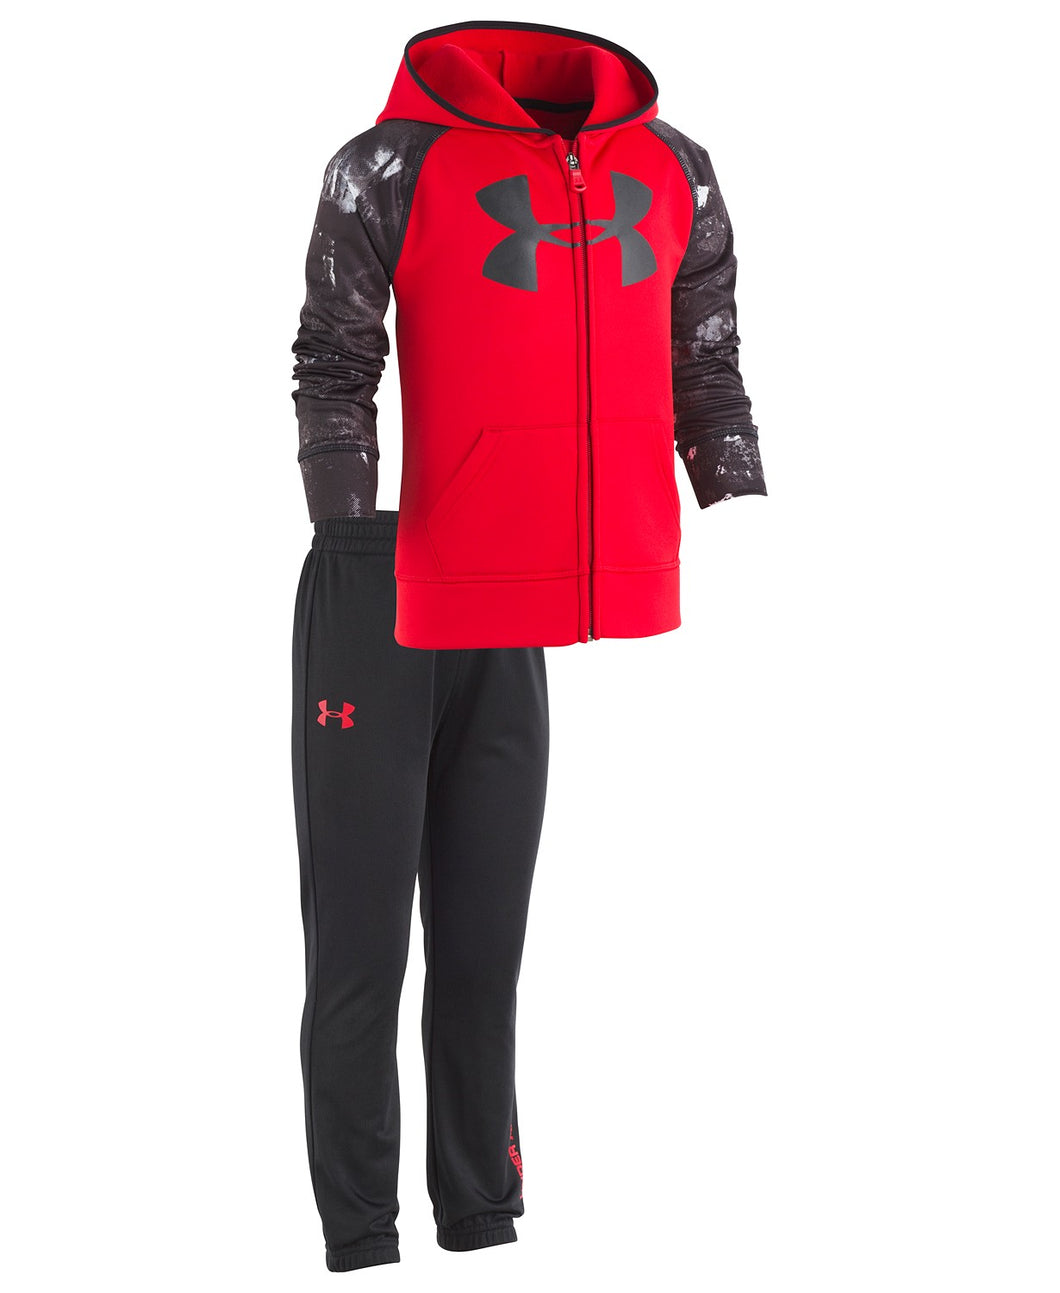 Under Armour Bedrock Camo Track Set - Red - Bloom Kids Collection - Under Armour